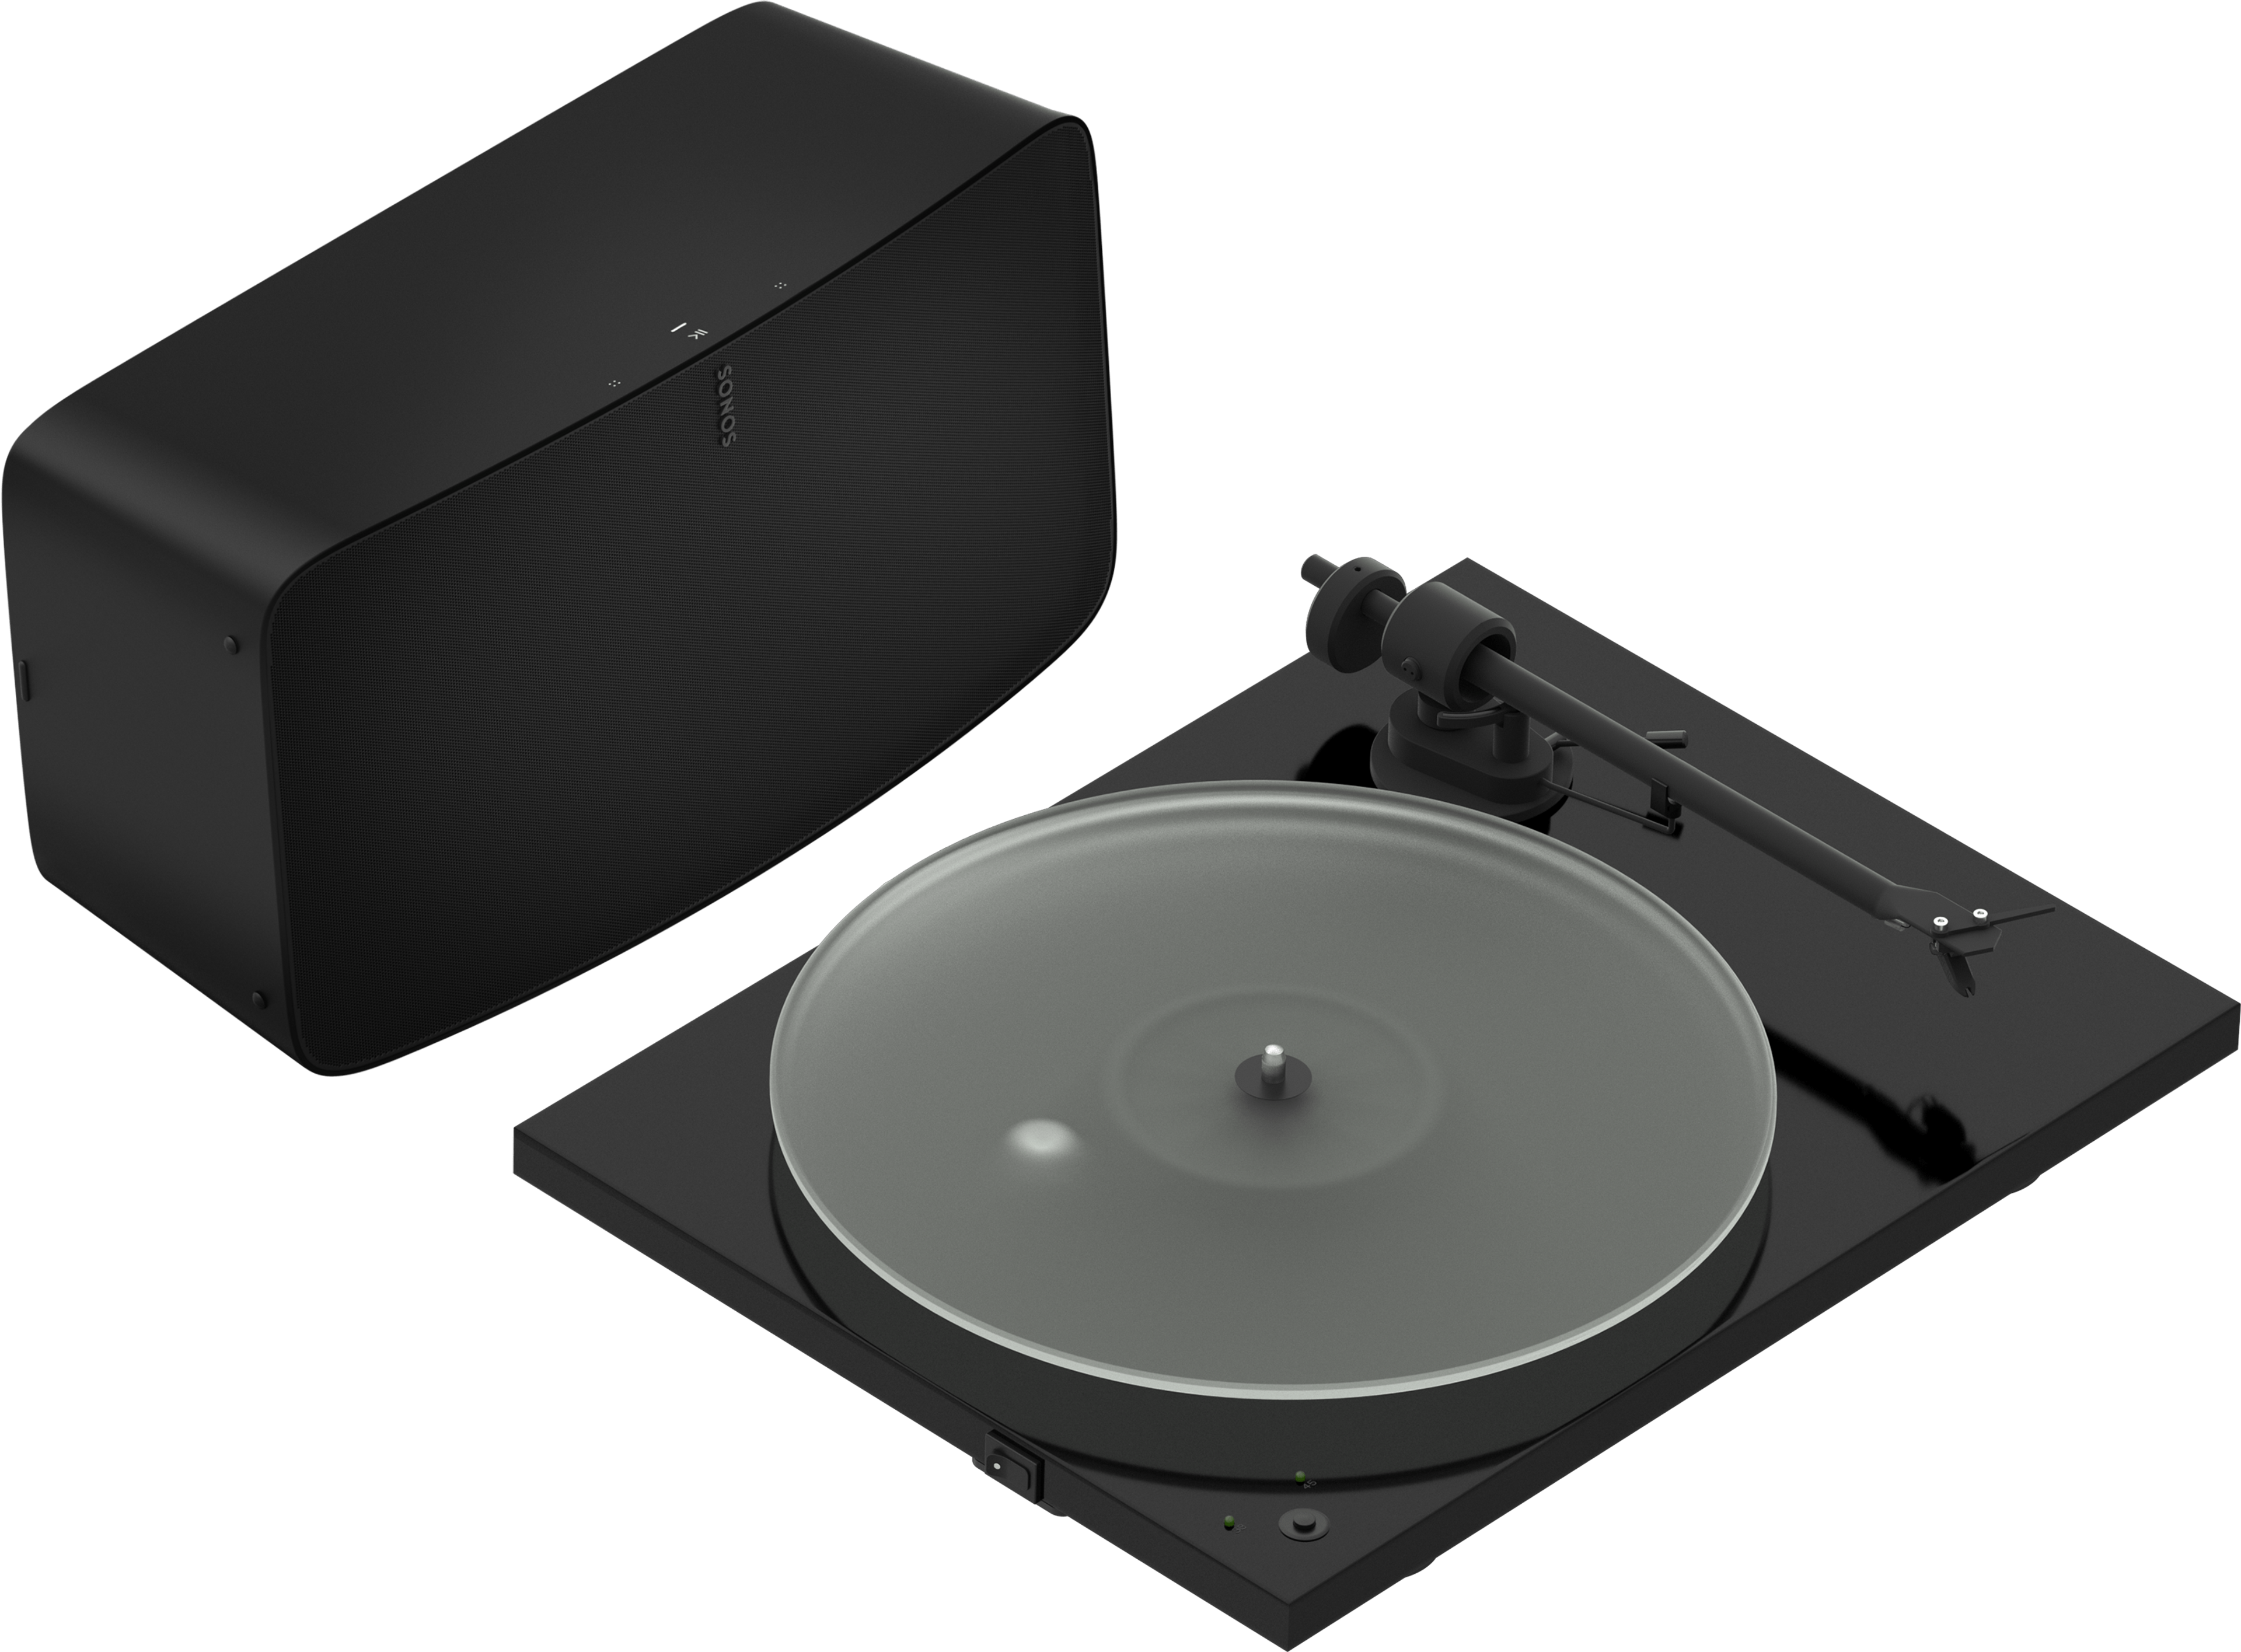 Pro-Ject T1 turntable with Sonos Five black